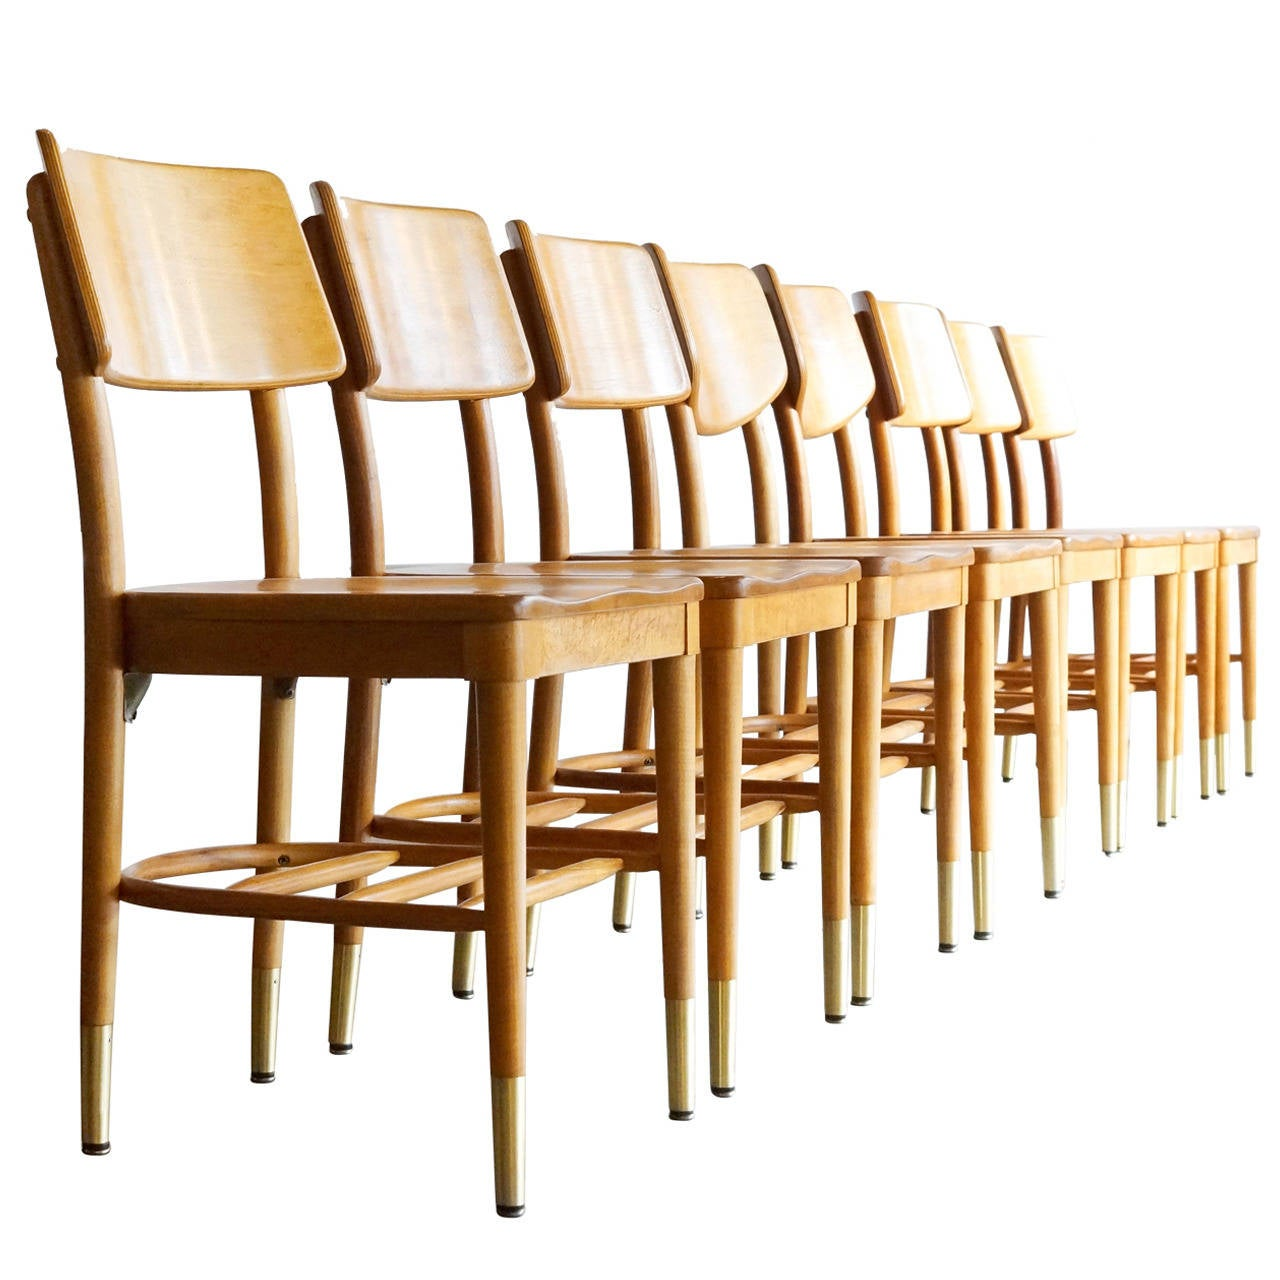 Set of 8 Bentwood School Chairs by Thonet, 1950s For Sale